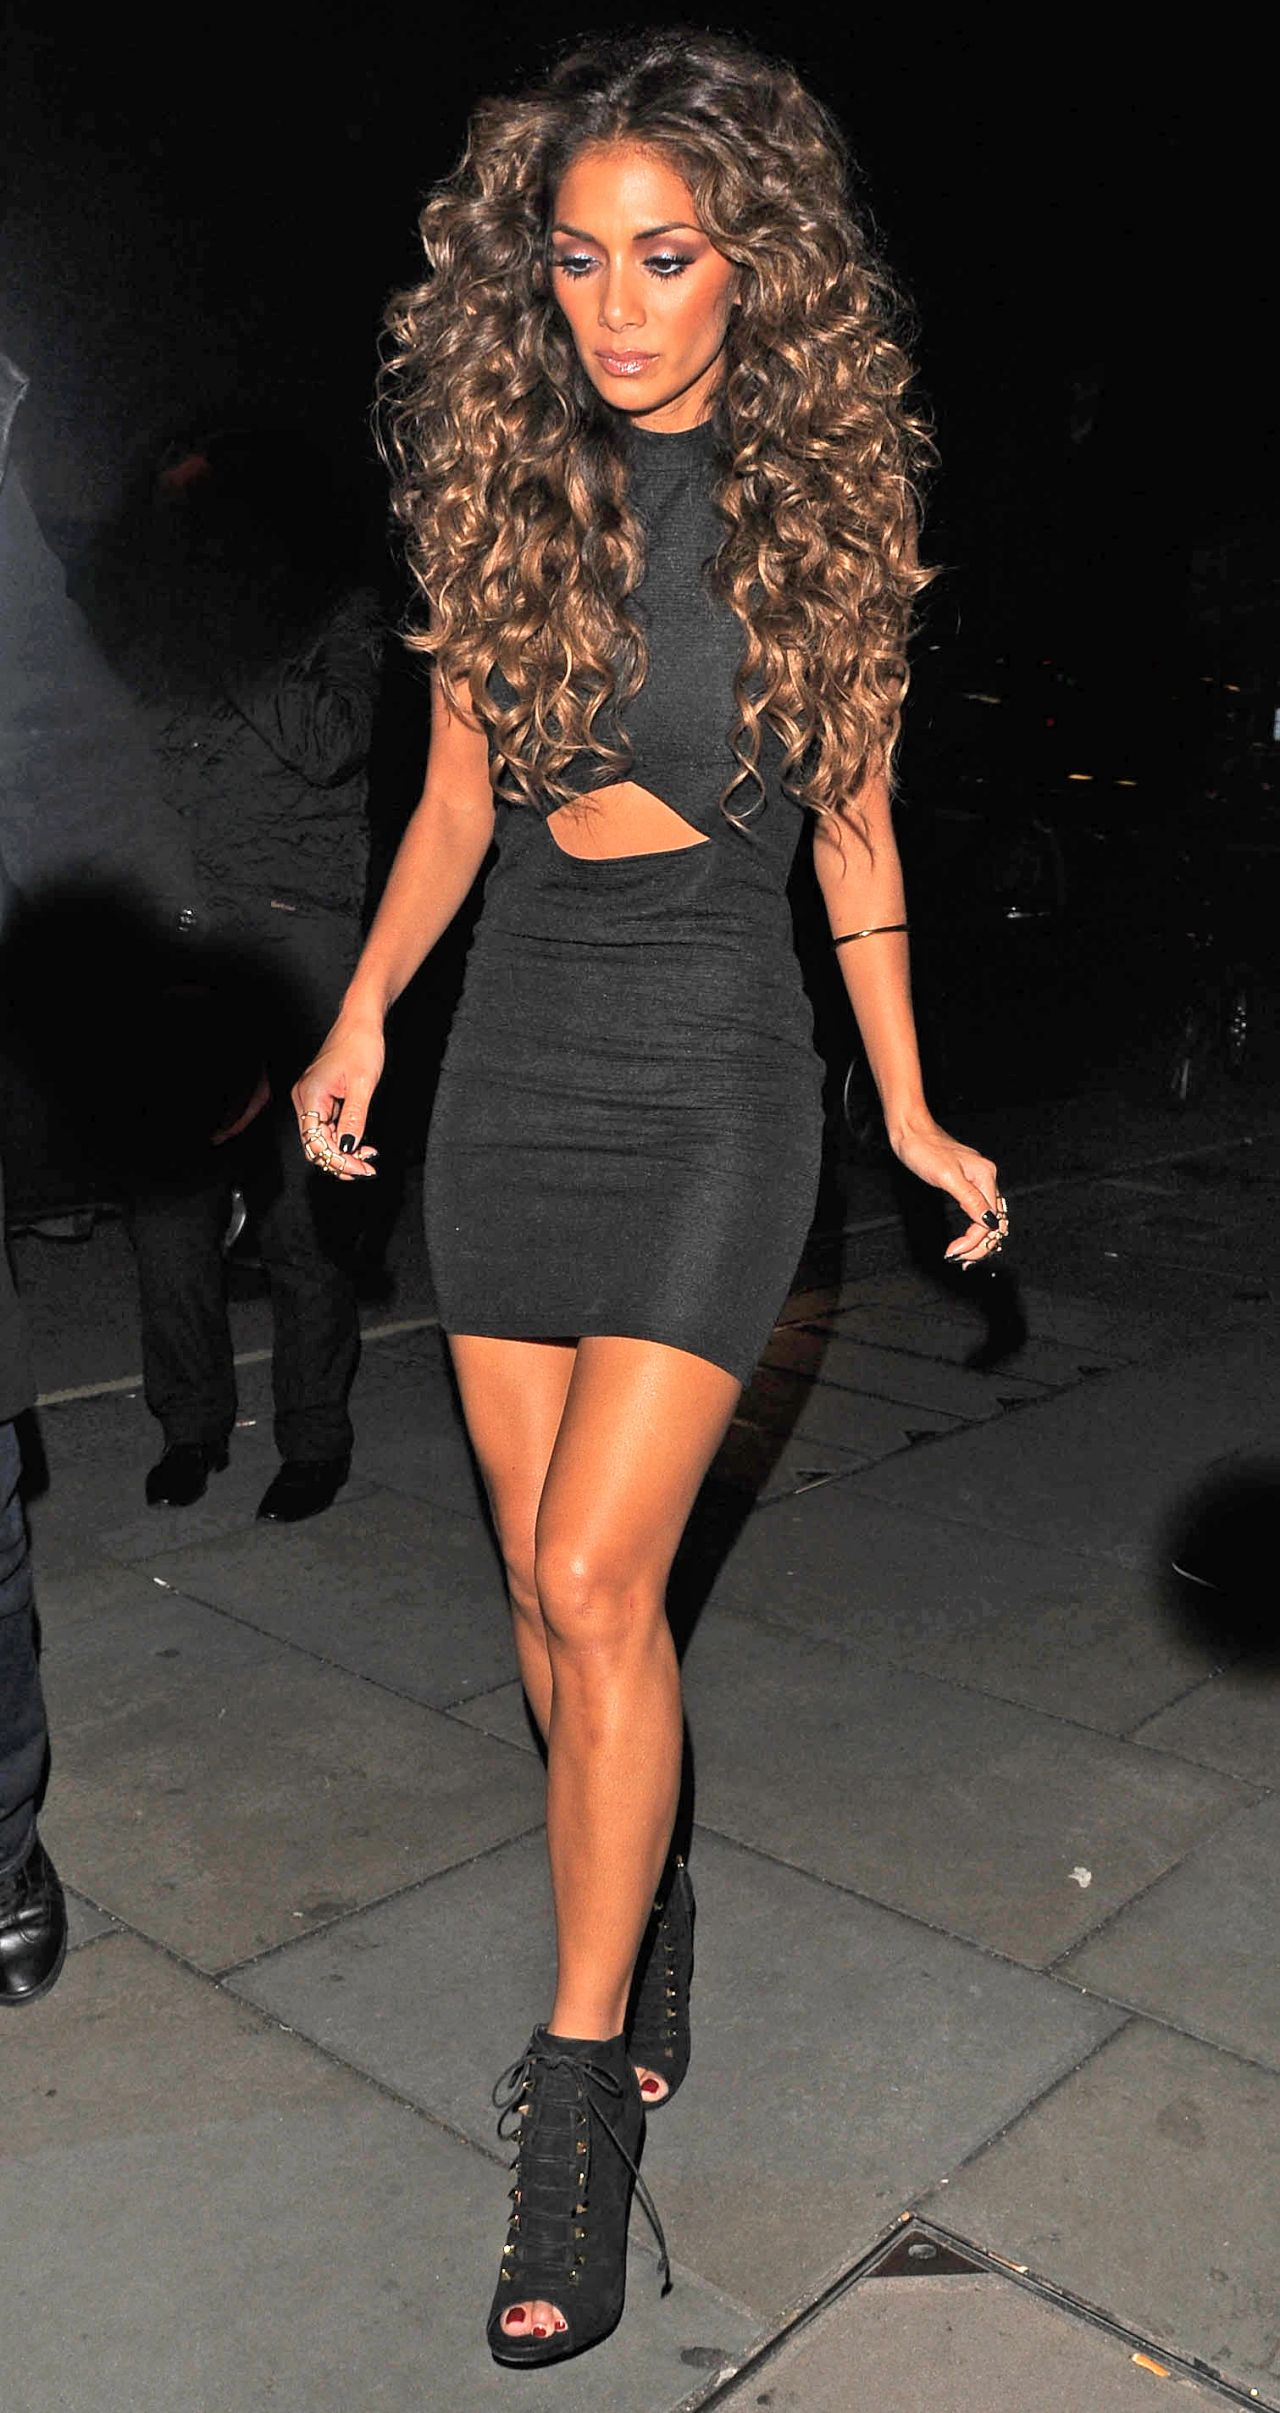 Nicole Scherzinger Night Out At The Cuckoo Club London